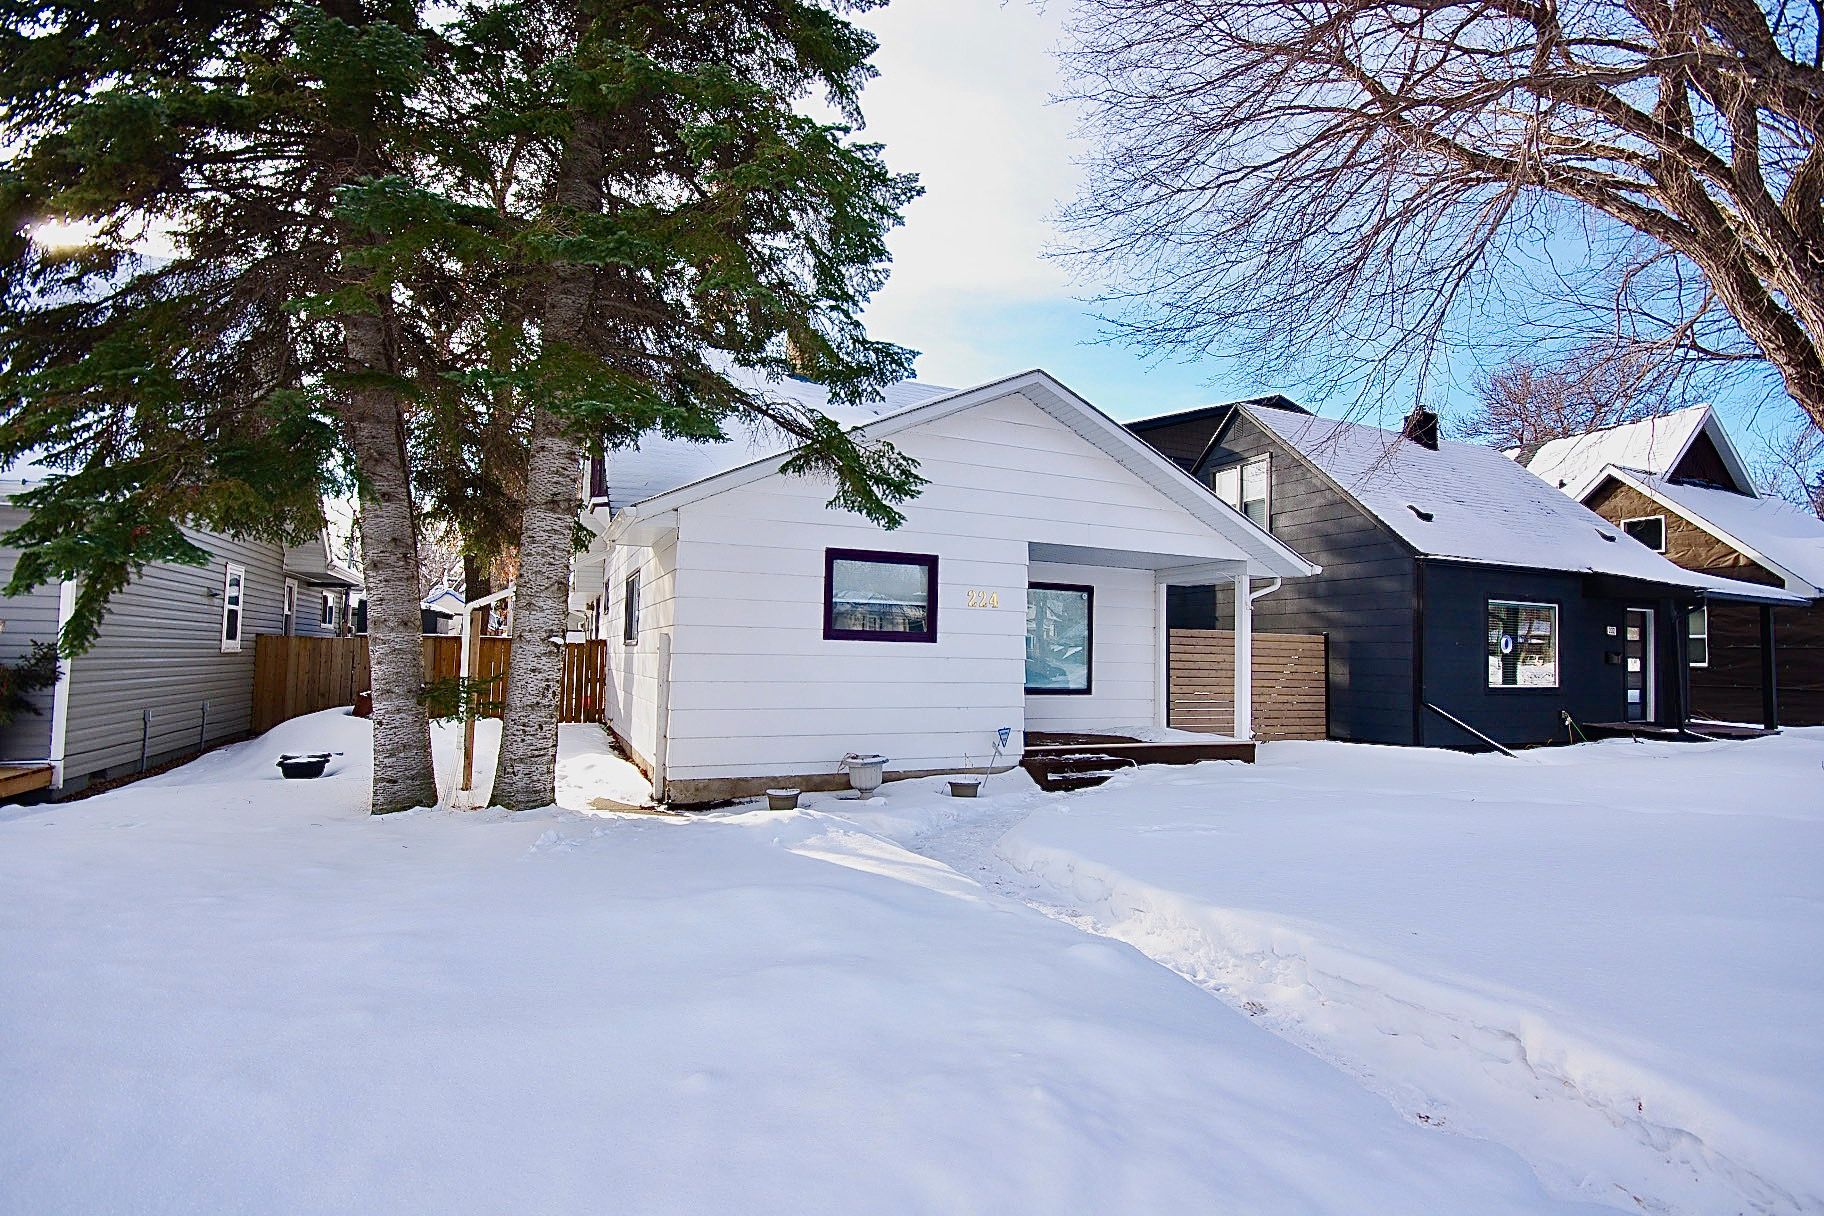 Main Photo: 224 Taylor Street East in : Exhibition Single Family Dwelling for sale (Saskatoon)